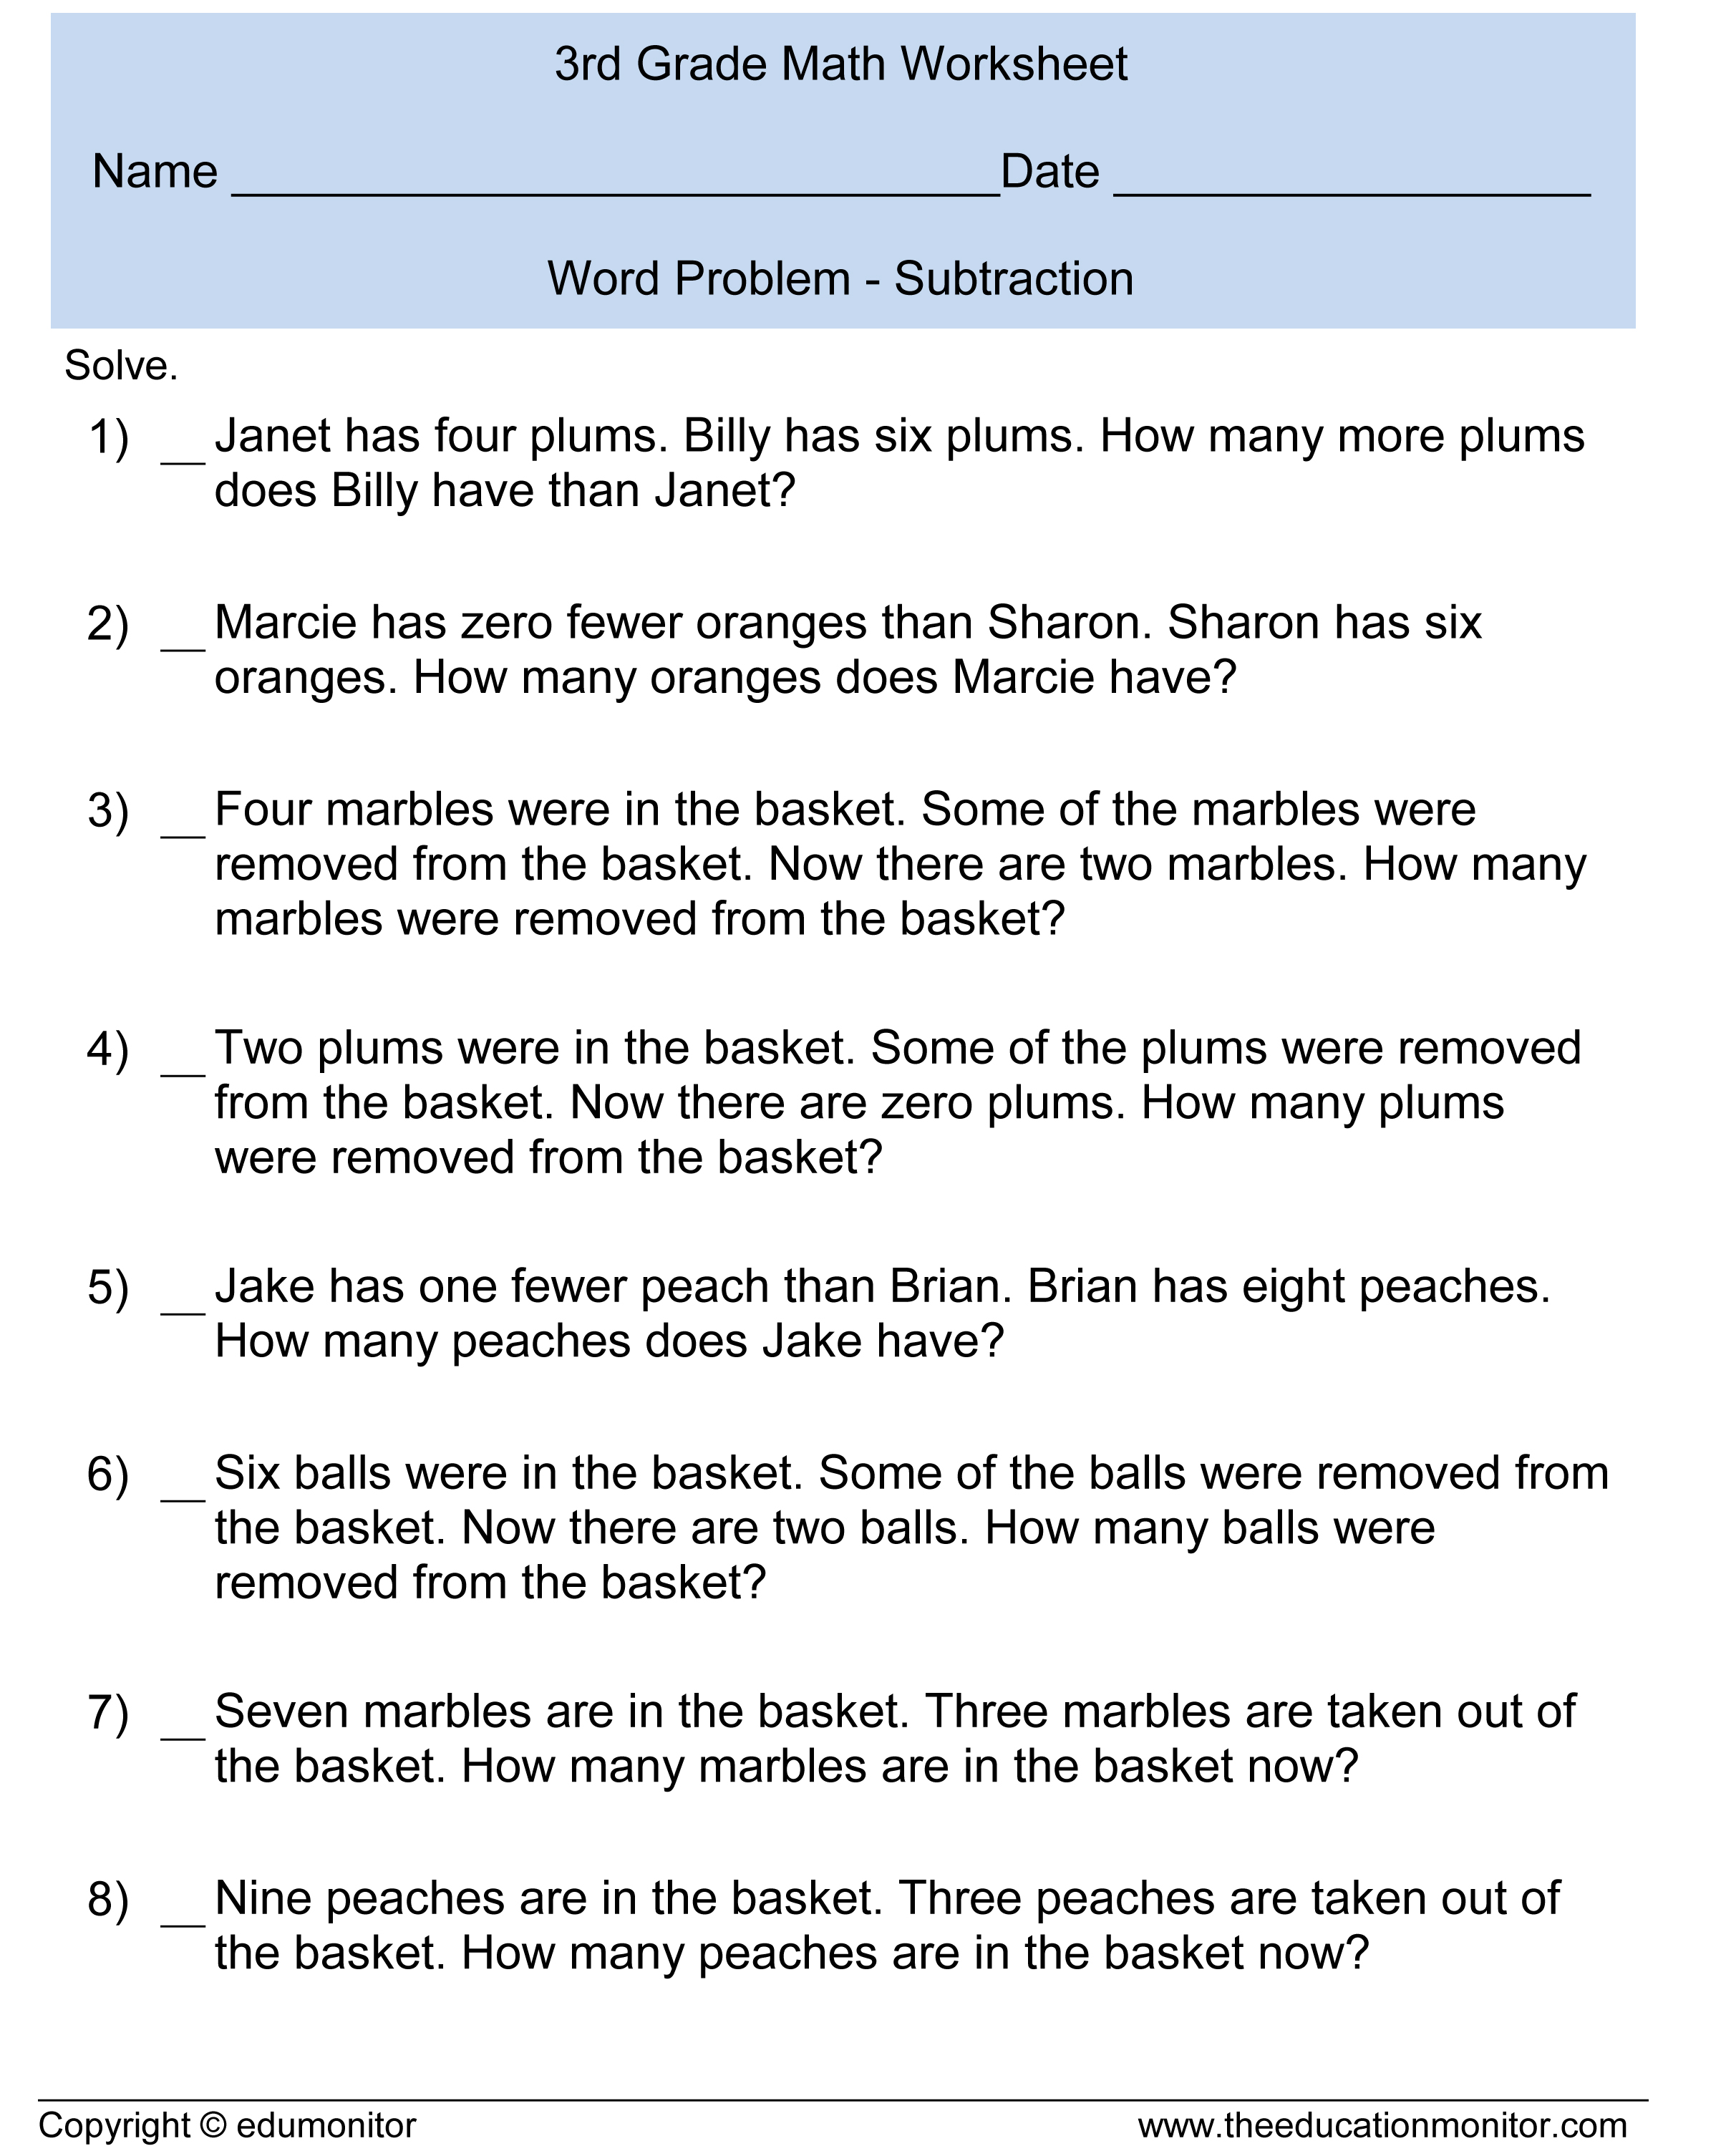 worksheet Subtraction Word Problems subtraction word problems 3rd grade for your kids discussion